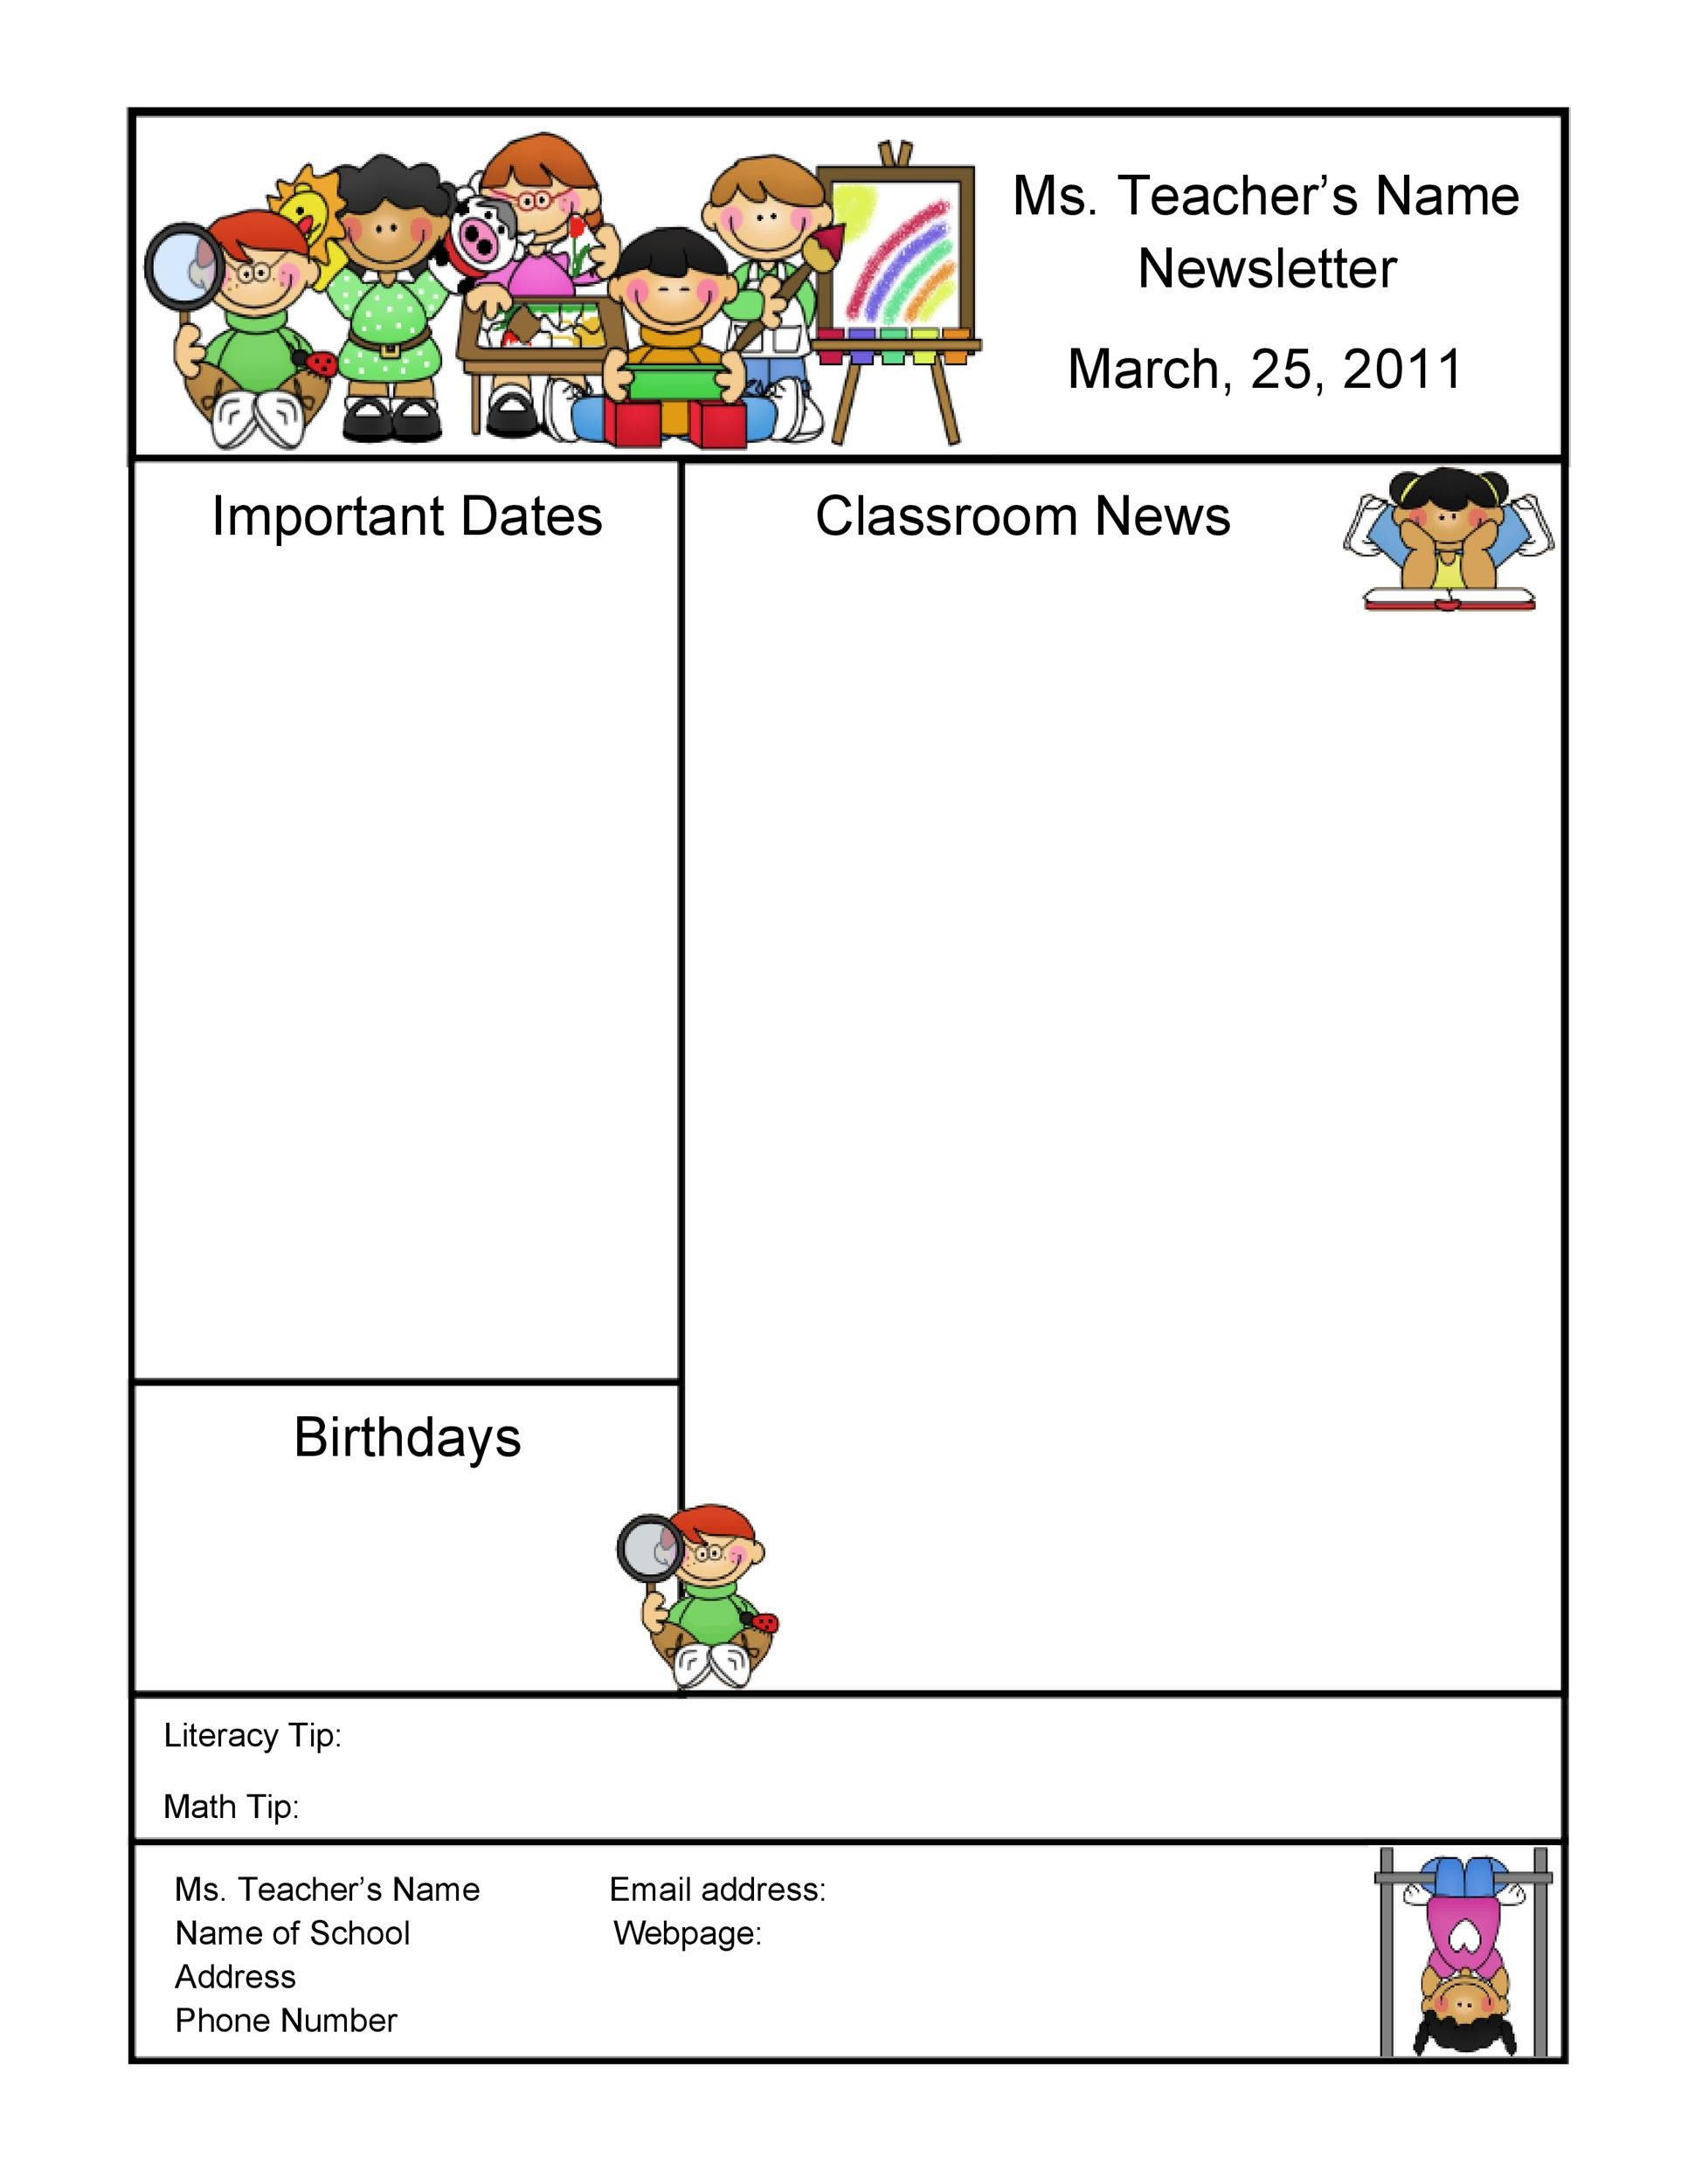 If you have good communication skills, the ability to instruct and the patience and creativity required, you might make an excellent kindergarten teacher. 50 Free Newsletter Templates For Work School And Classroom